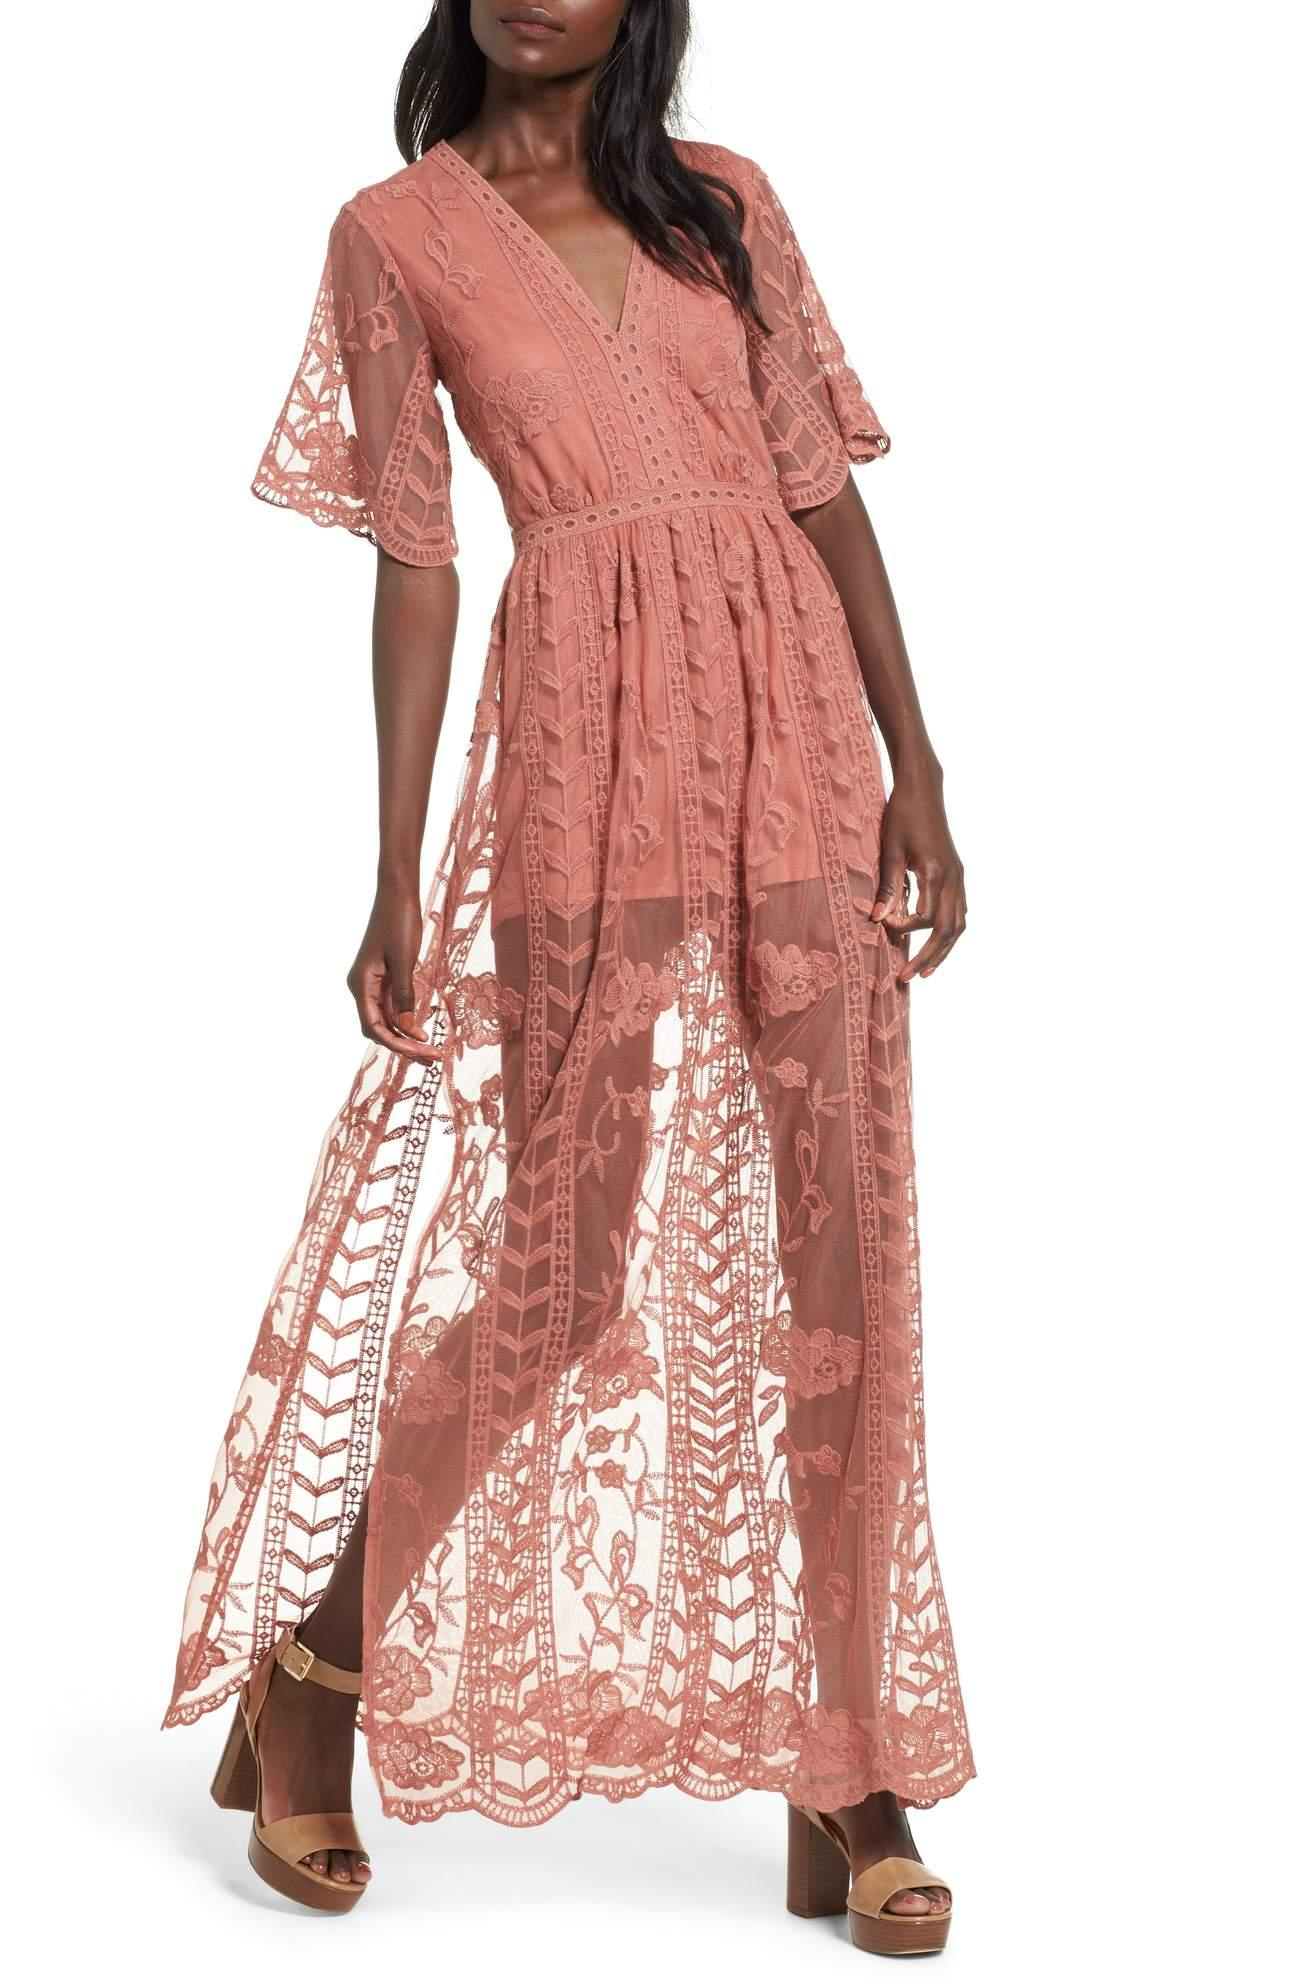 <p>This Lace Overlay Romper/SOCIALITE is so romantic! The mix of the sheer and lace is perfection.{&nbsp;} Also, you'll see a lot of the 'burnt rose' color this Spring - its a bit bolder than the classic Spring pastels we are used to. $79.00{&nbsp;} at Nordstrom. (Image: Nordstrom){&nbsp;}</p><p></p>